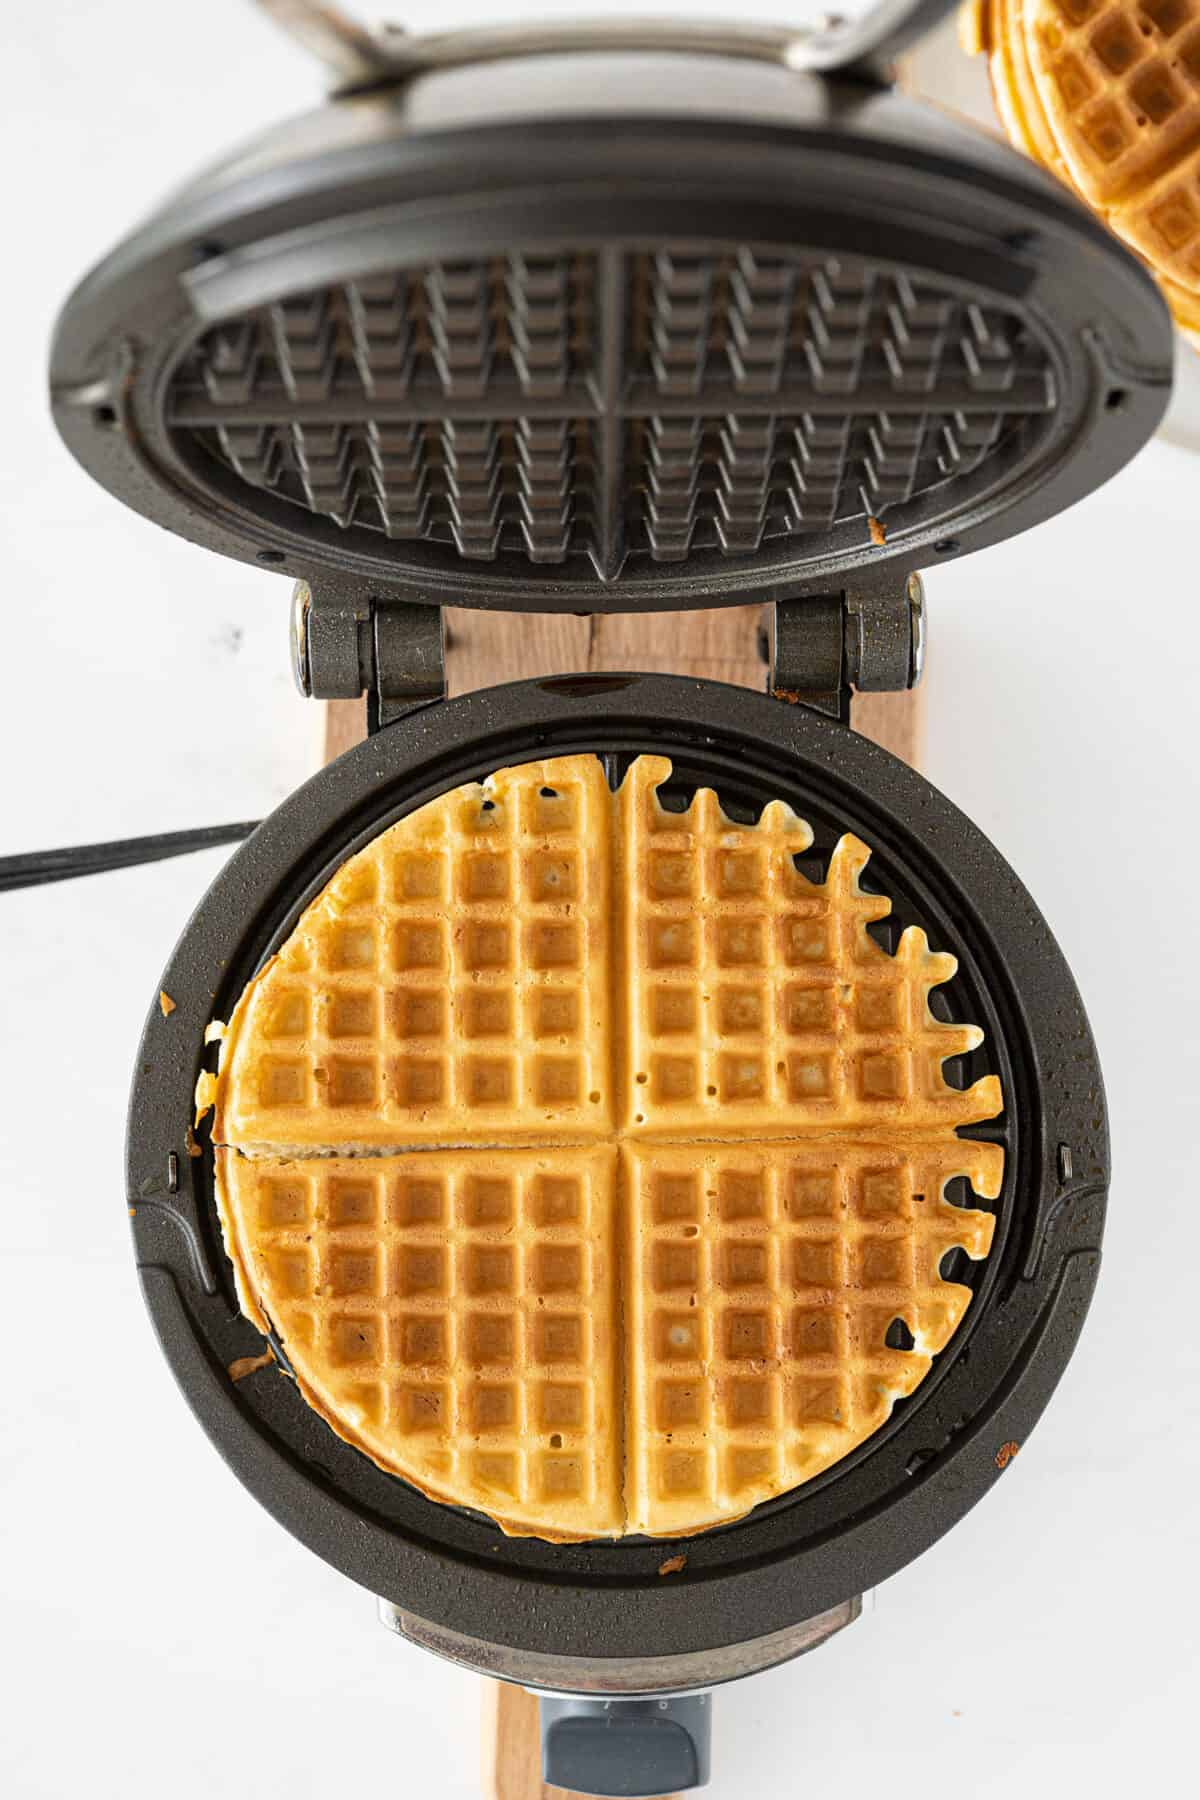 bisquick waffles being prepared in a waffle maker